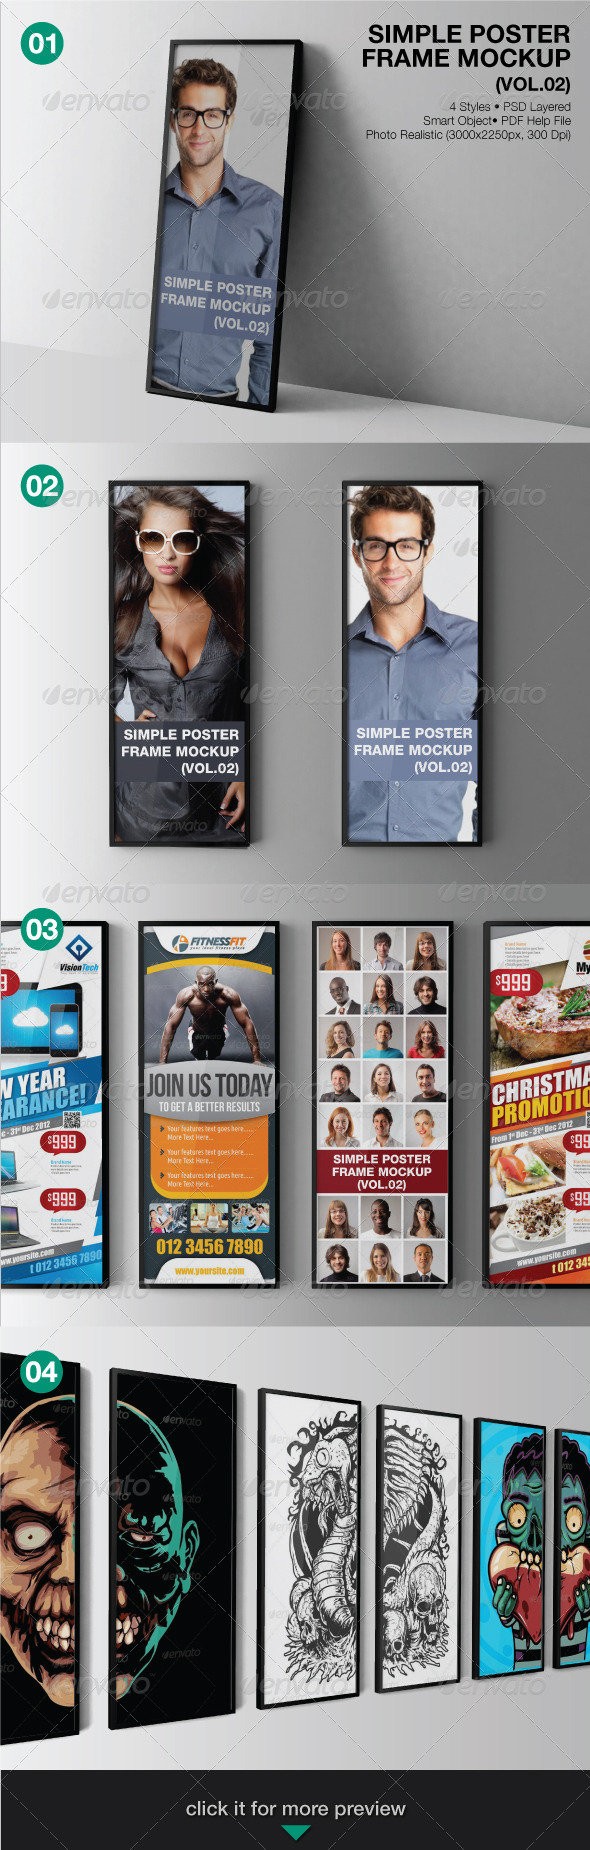 Simple Poster Frame Mockup (Vol.02) - Print Product Mock-Ups